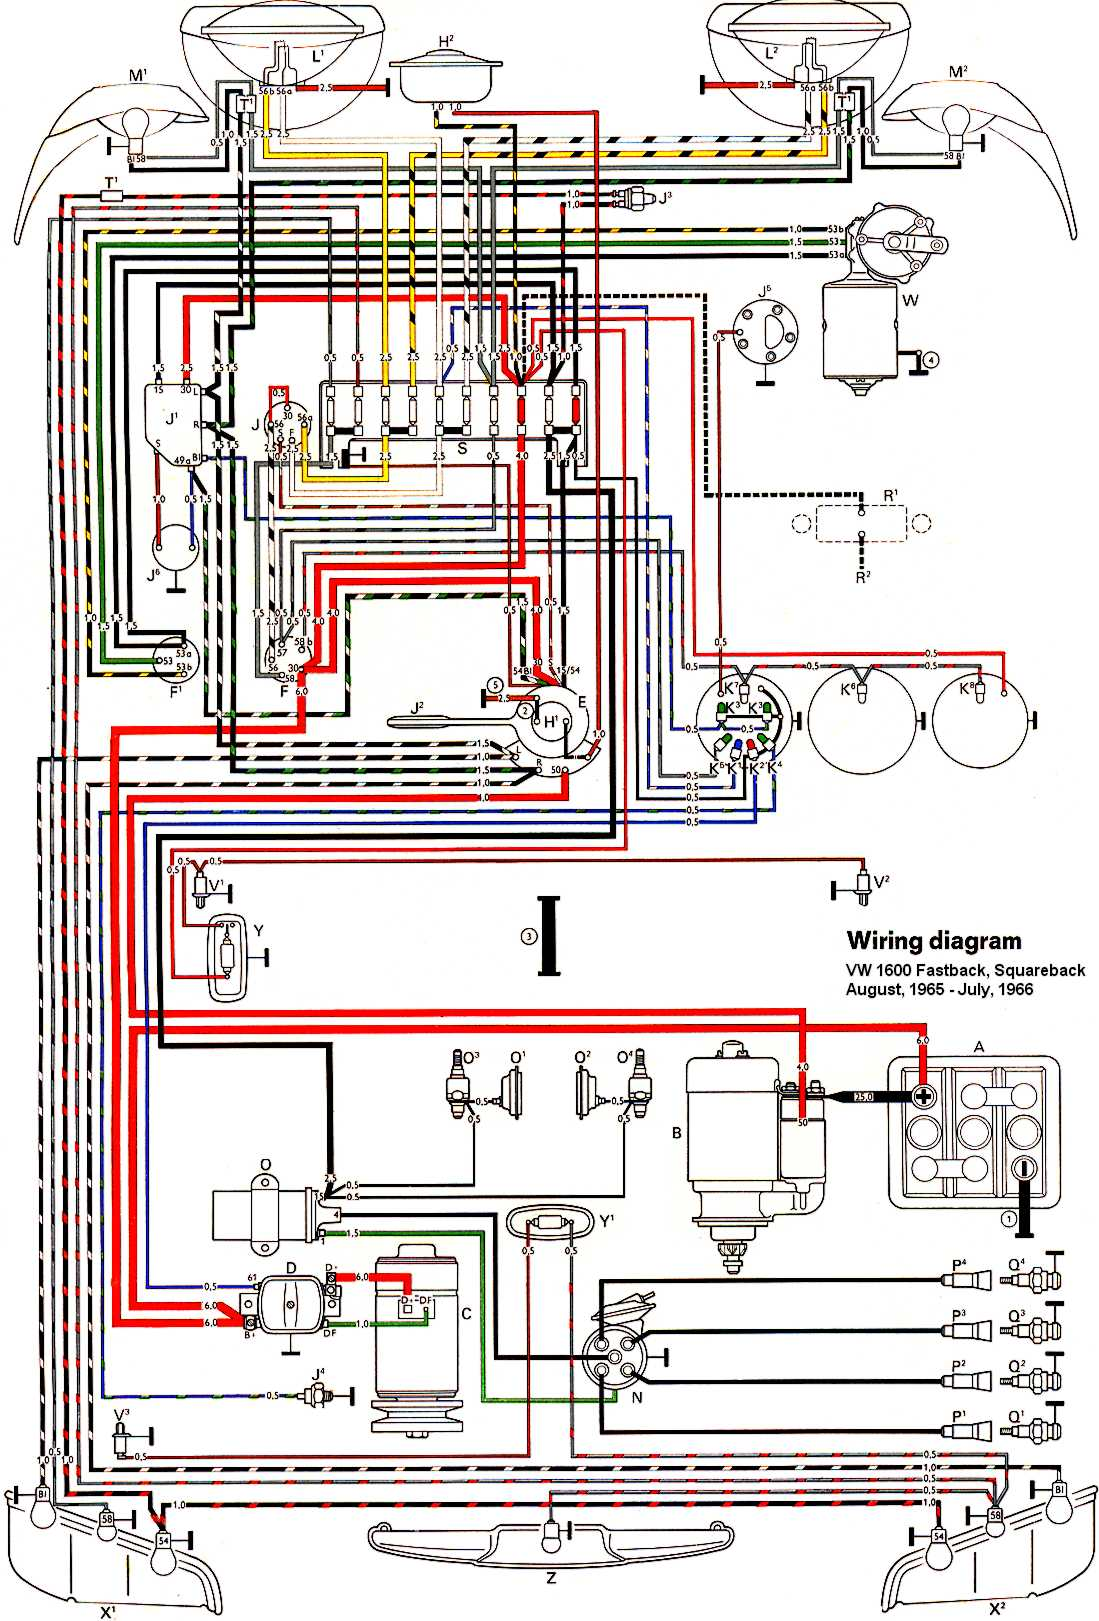 Vw Golf 3 Tdi Wiring Diagram : Thesamba type wiring diagrams